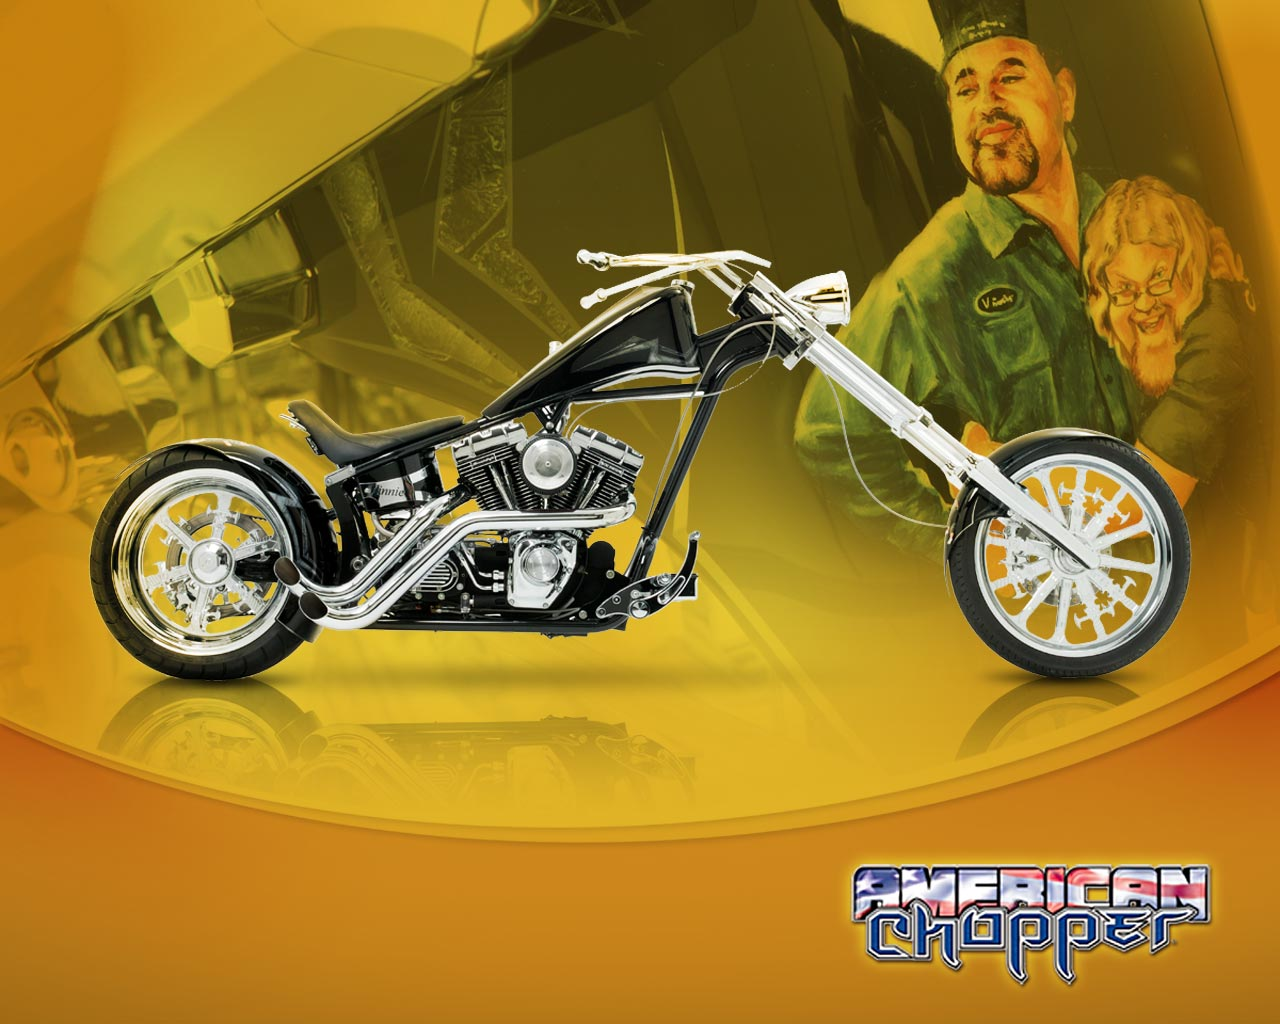 American chopper   Orange County Choppers Wallpaper 124420 1280x1024